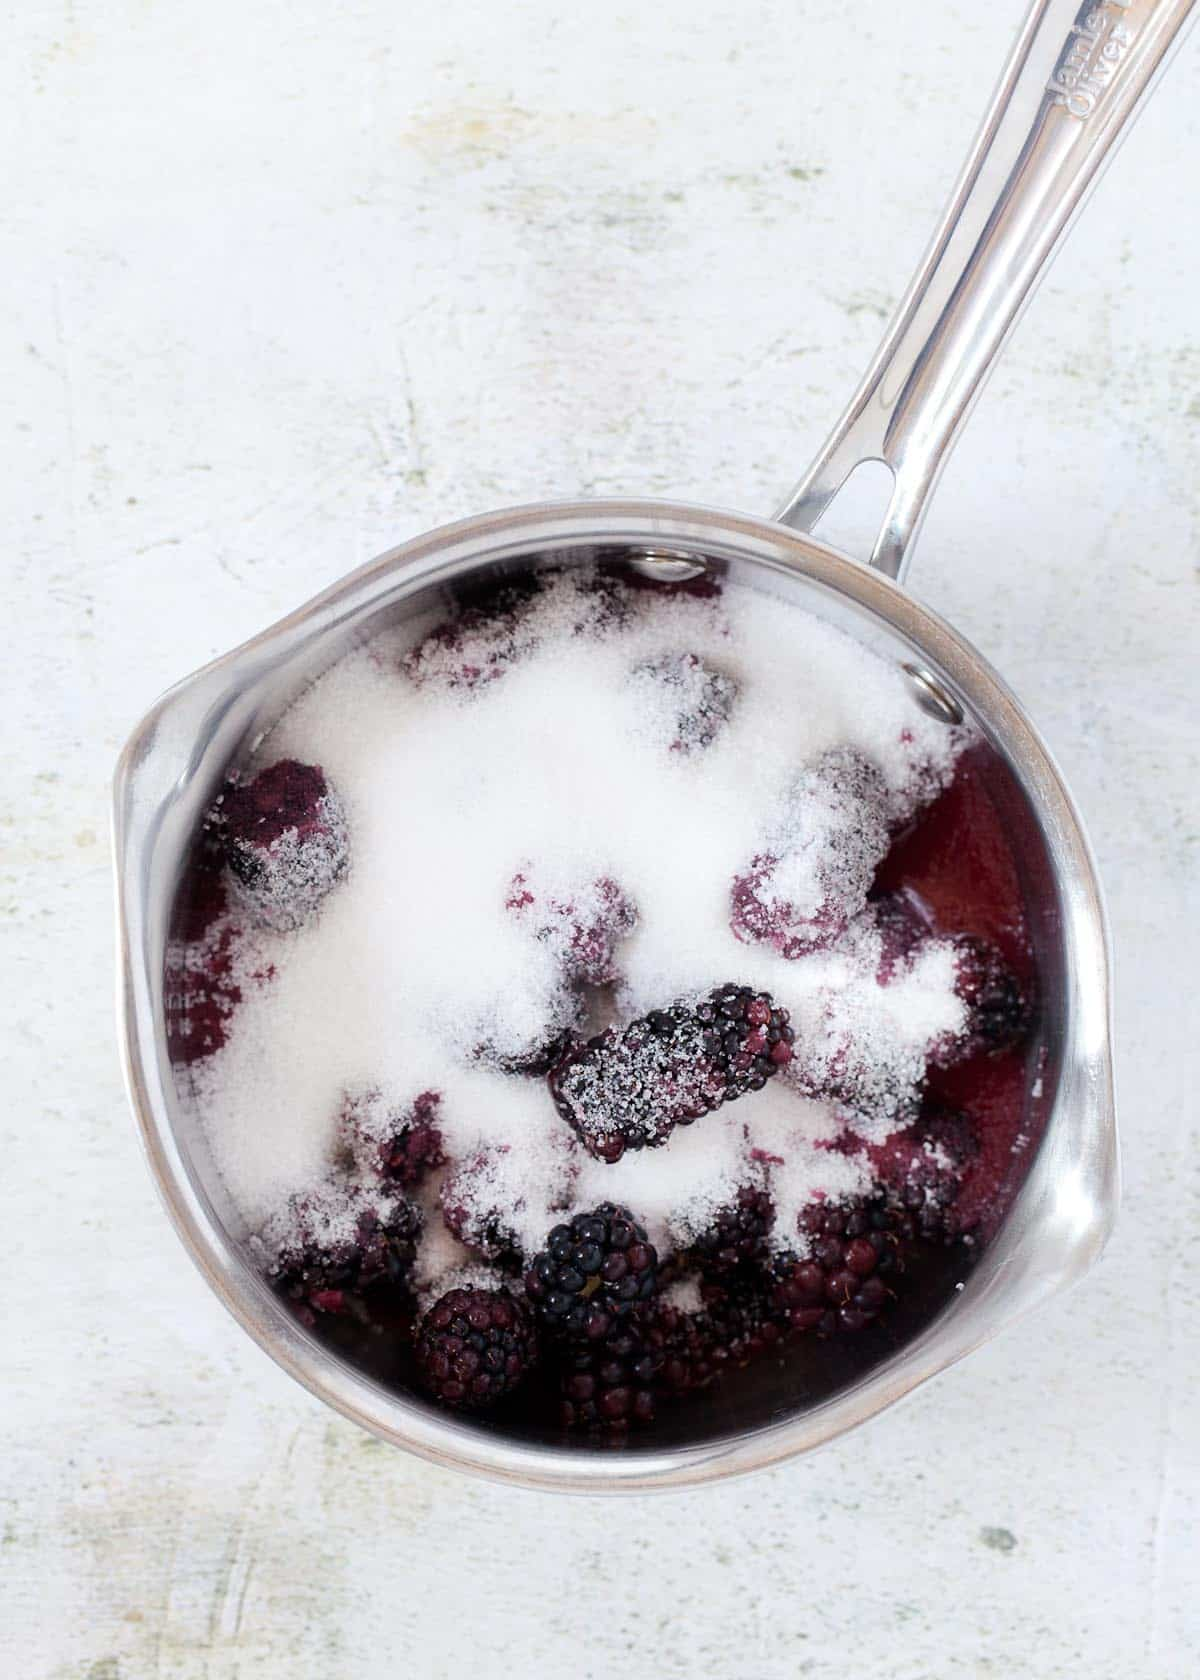 Blackberries and sugar in a saucepan ready to be cooked